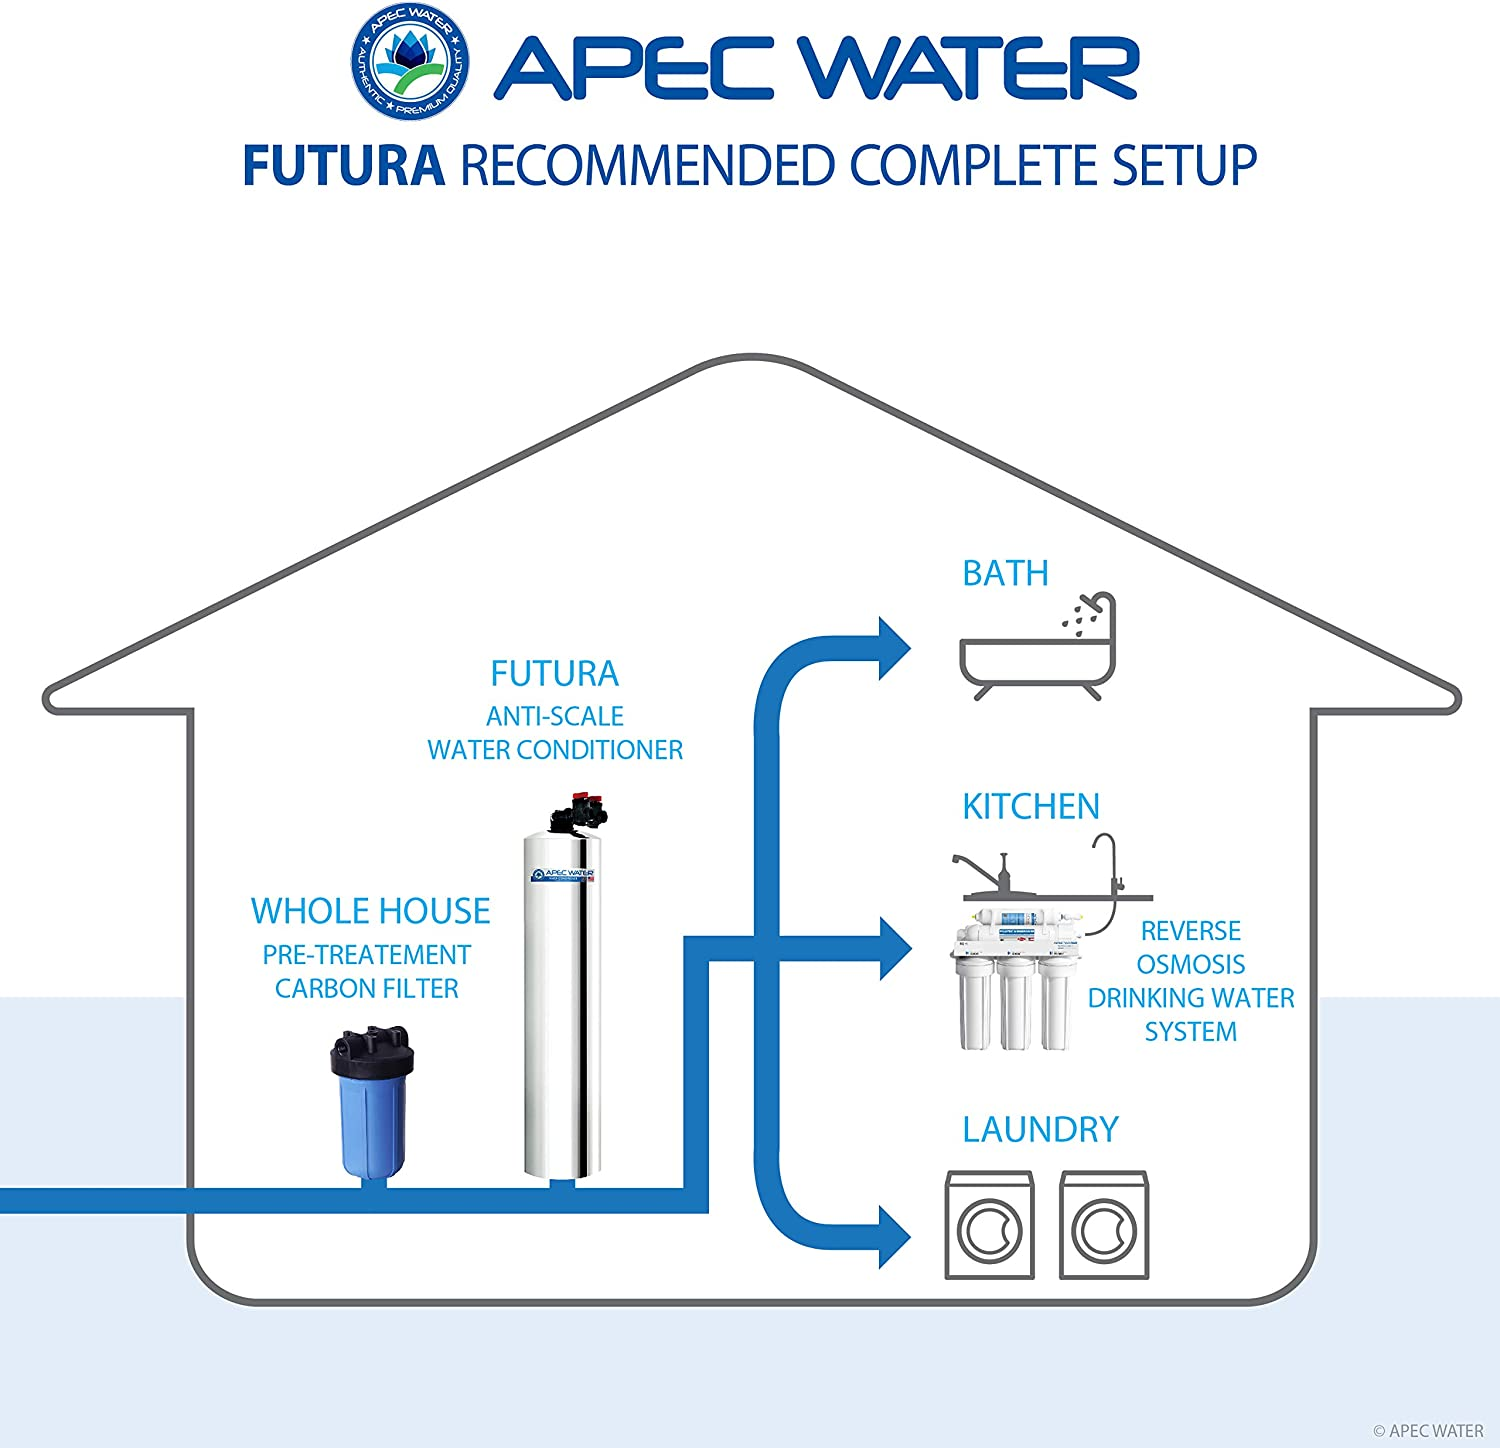 APEC Water FUTURA-10 Water Conditioner anti scale system